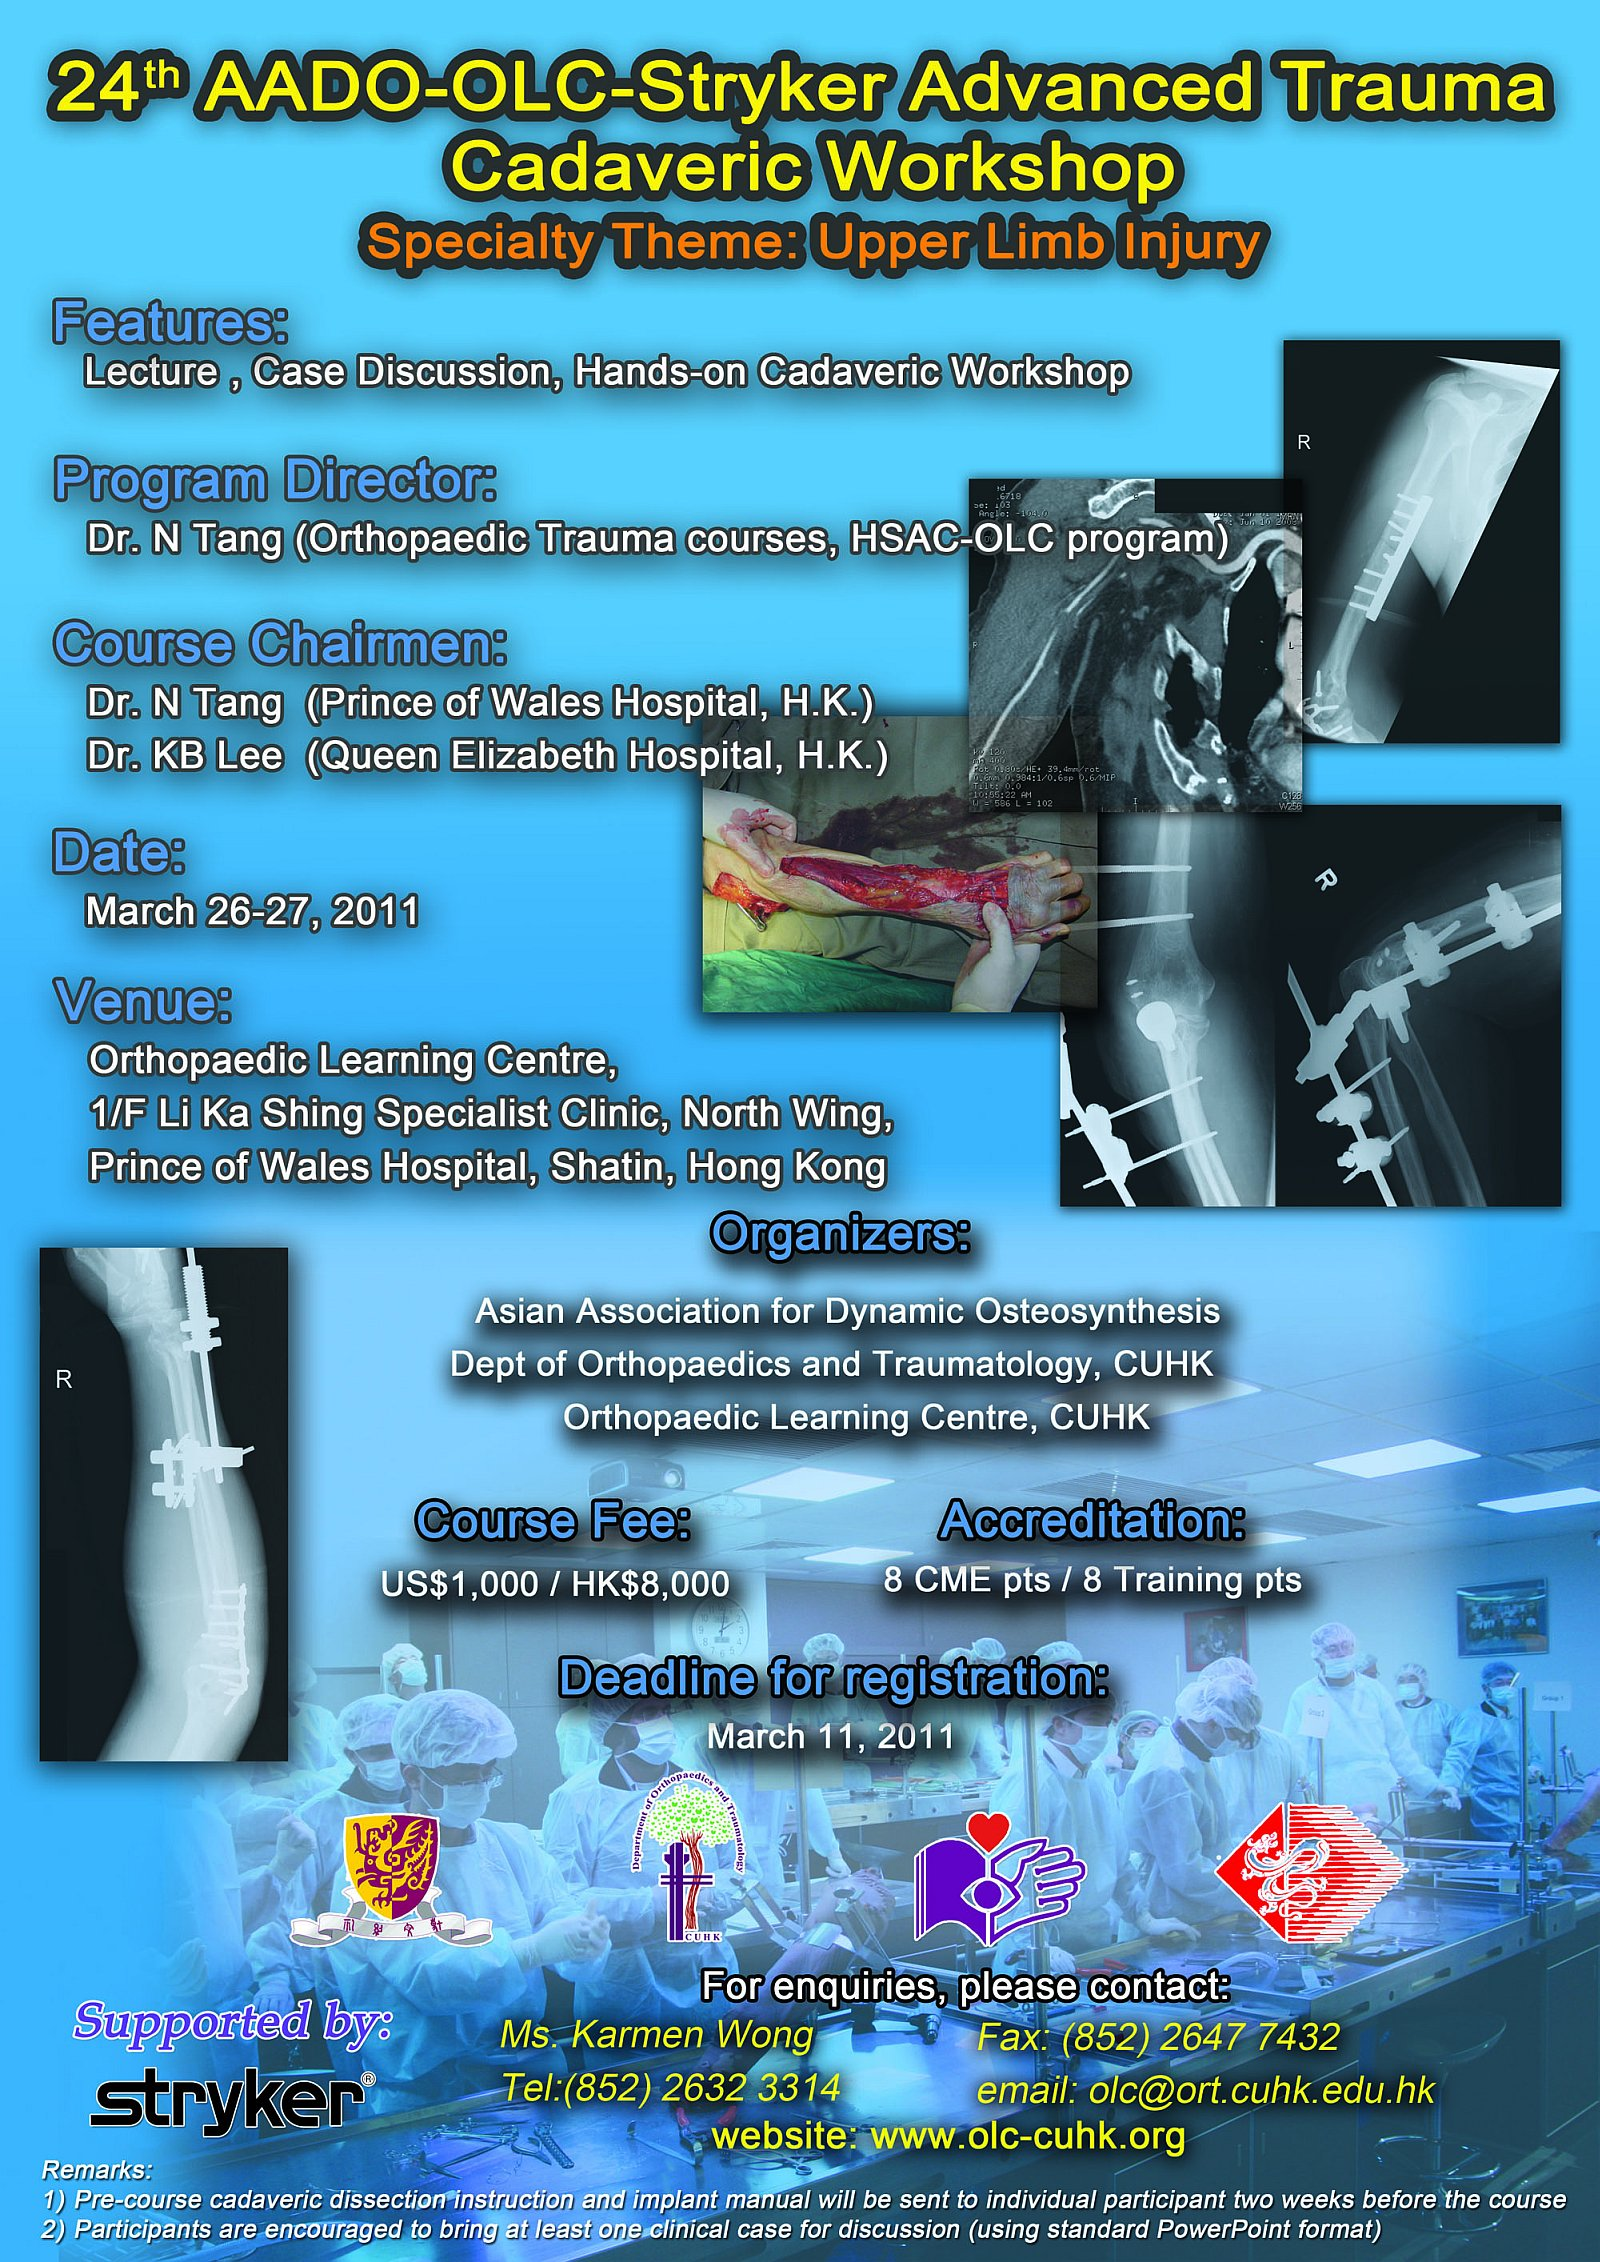 asian association for dynamic osteosynthesis International collaboration of orthopaedic nursing ( icon ) conference 2016 cum the 9th biennial orthopaedic nursing conference 2016 28 - 29 october 2016.